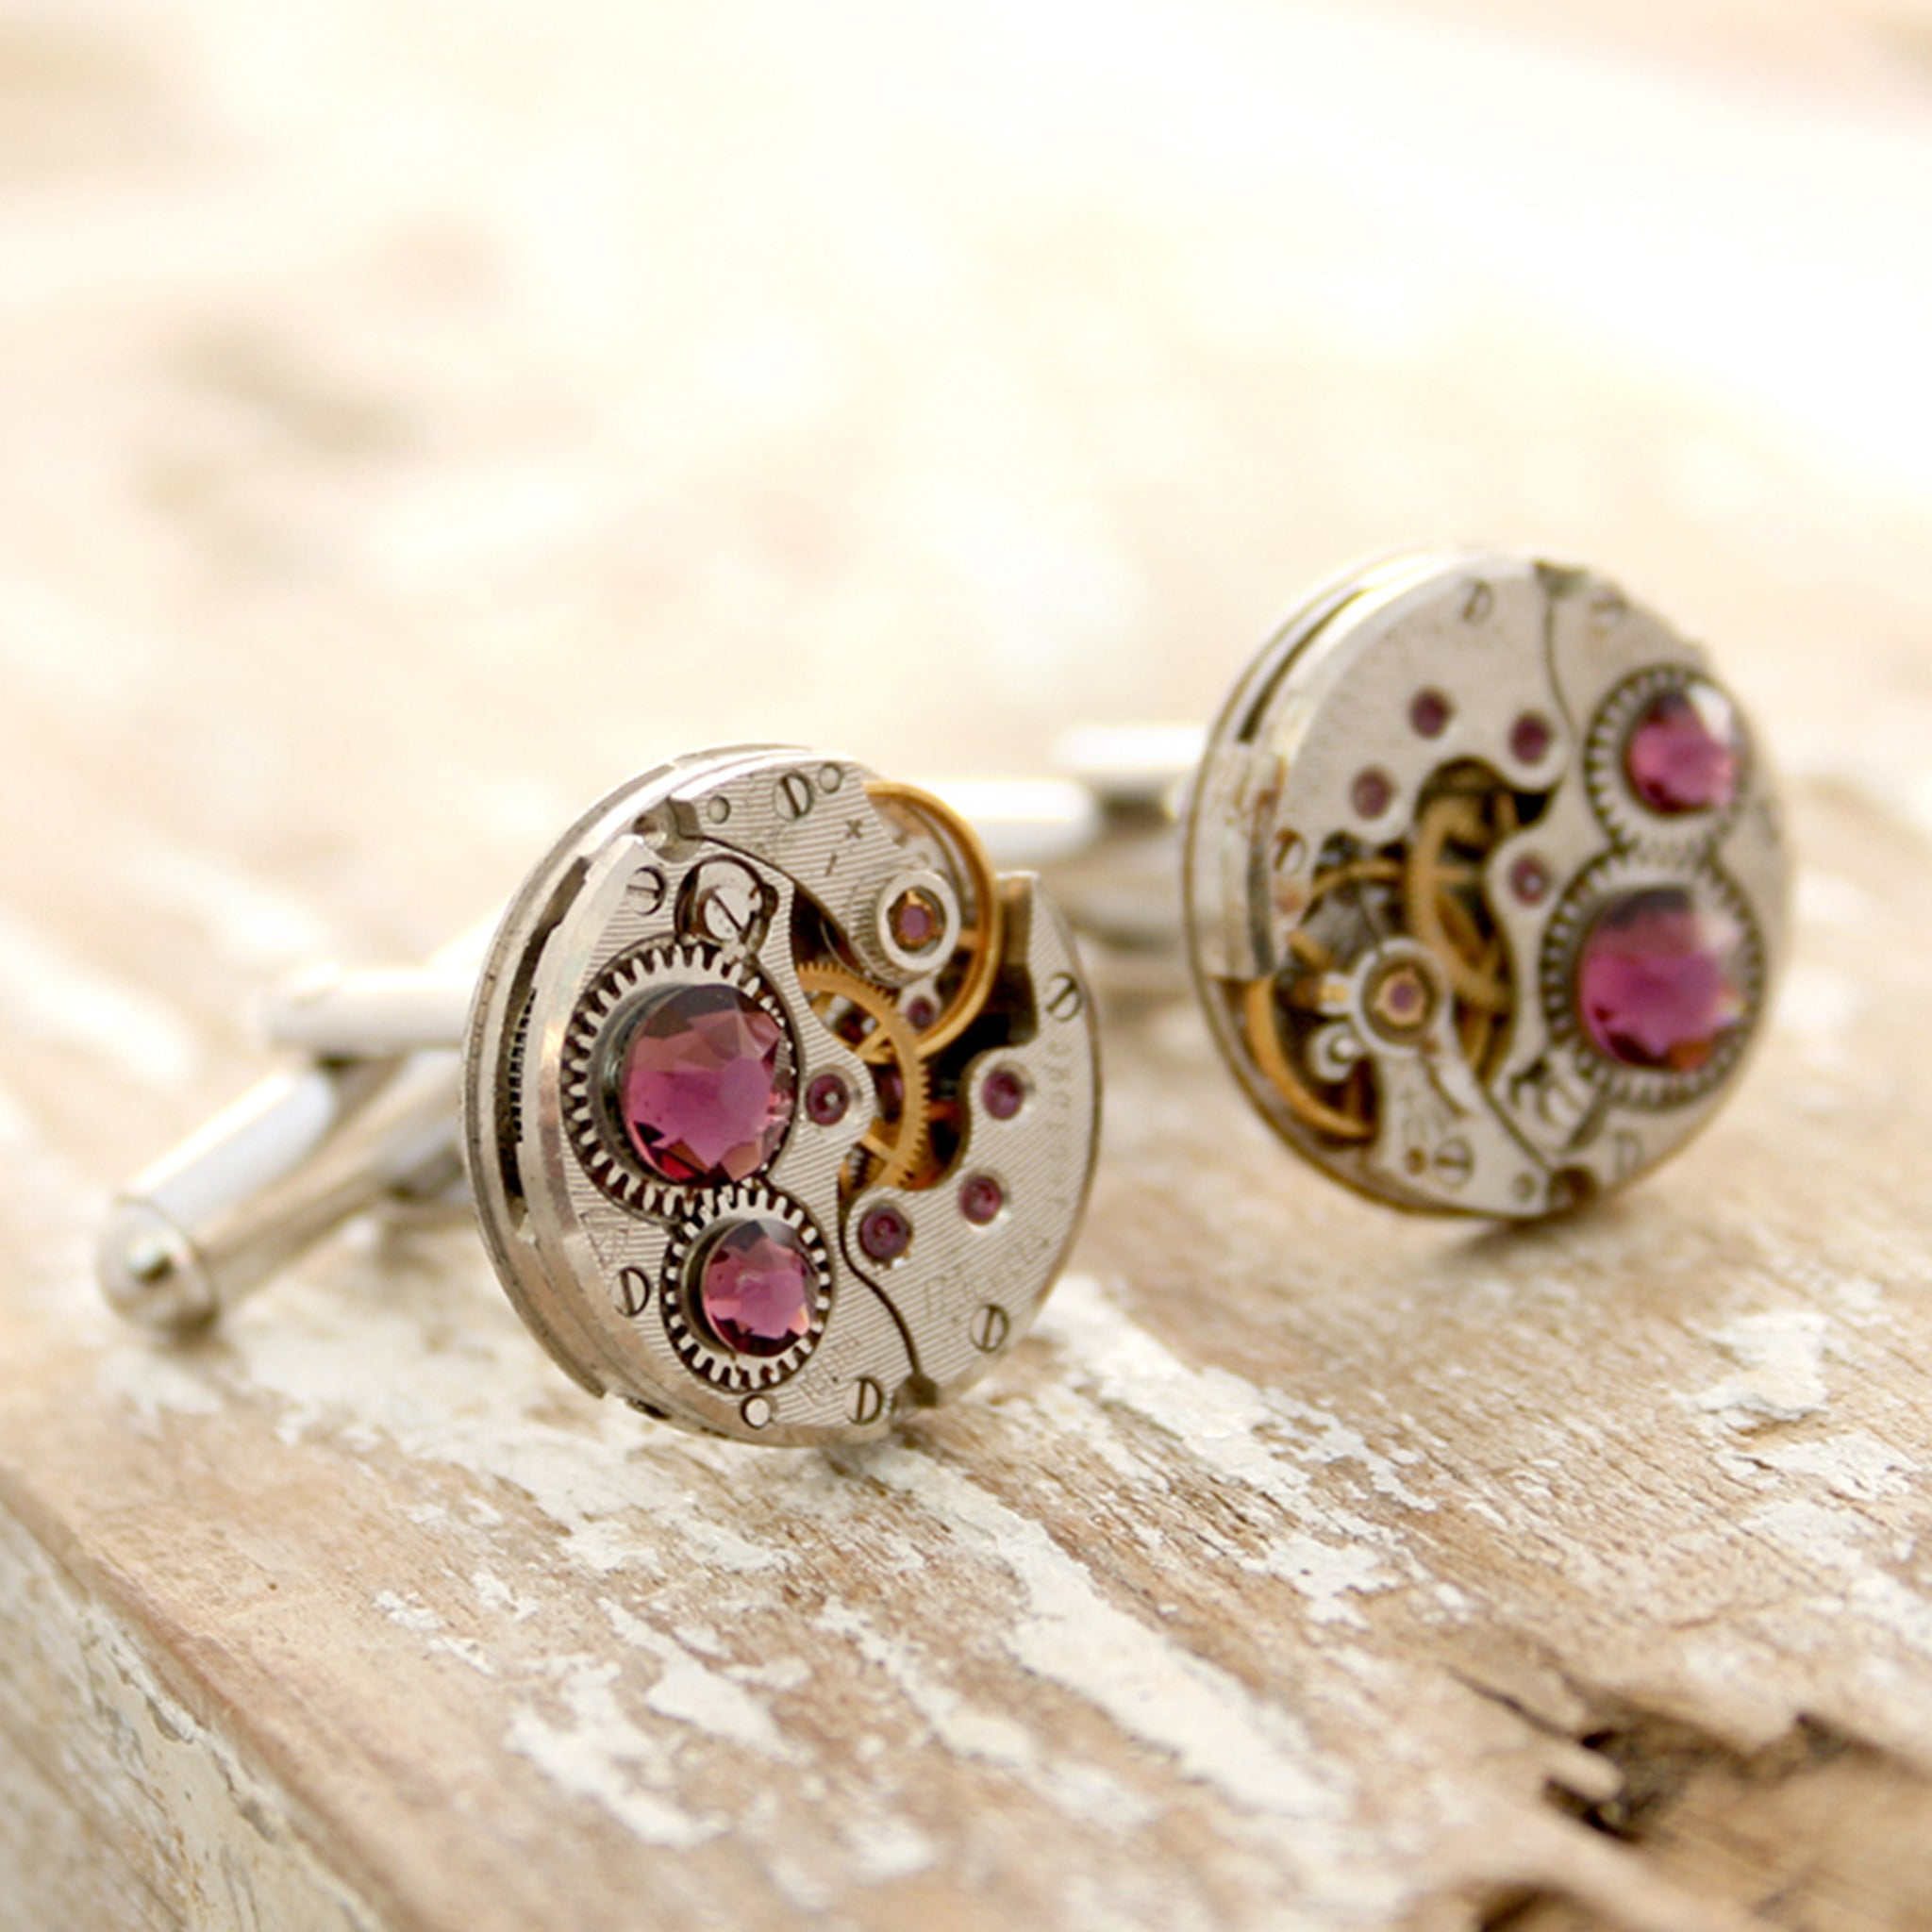 birthstone cufflinks in steampunk style featuring antique watch movements and Amethyst crystals